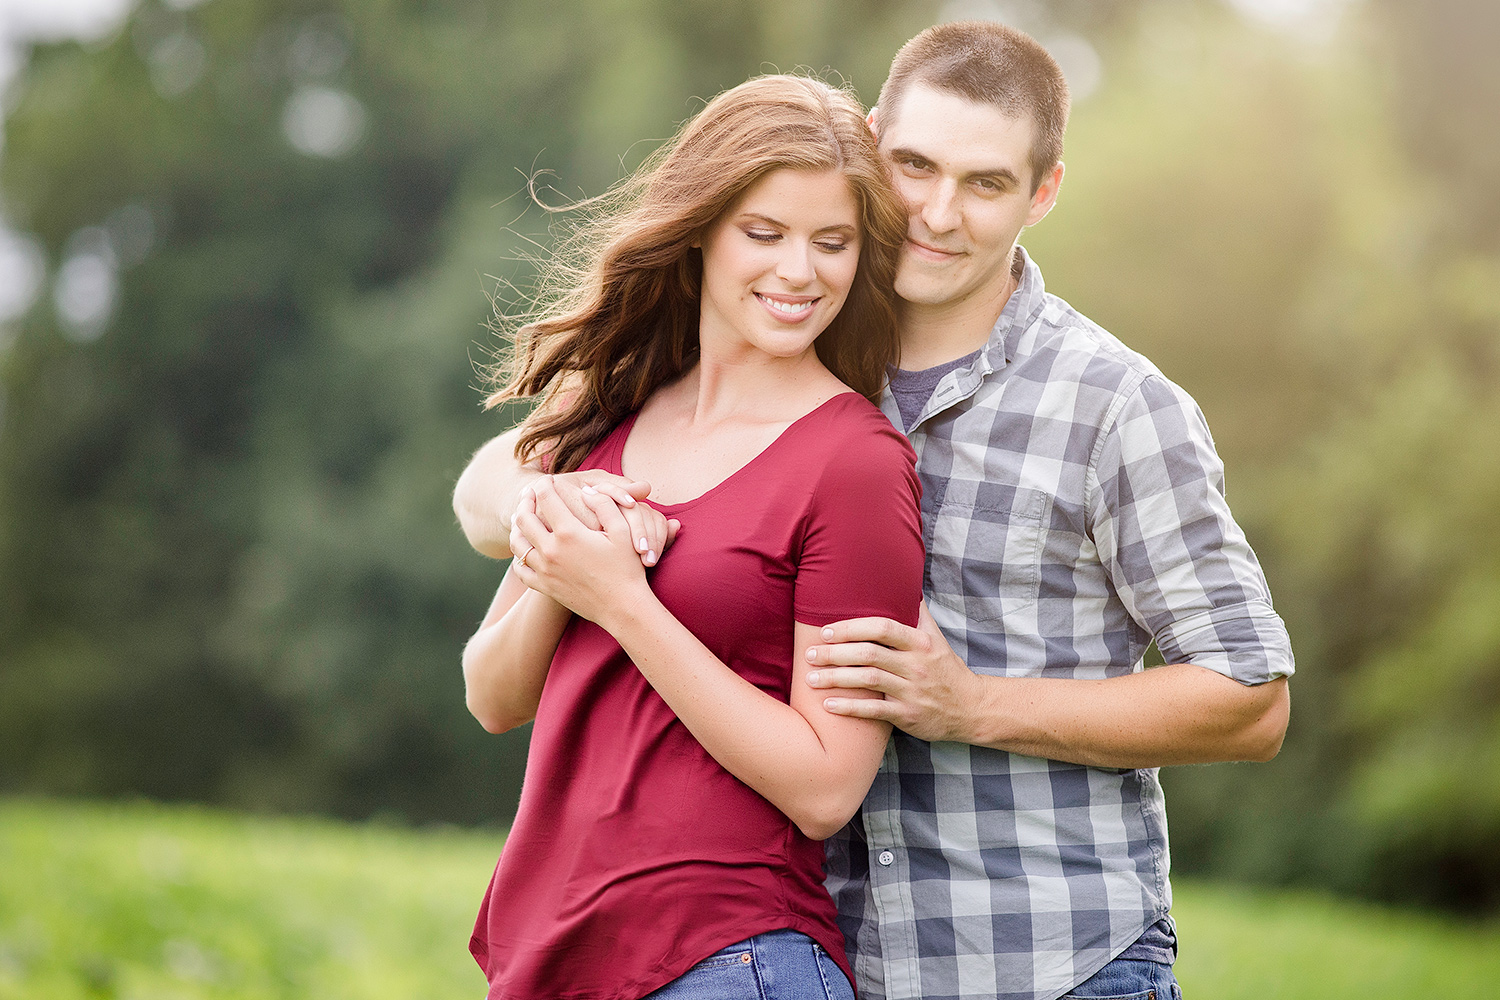 Engagement-session-photographers-berks-county-pa_022